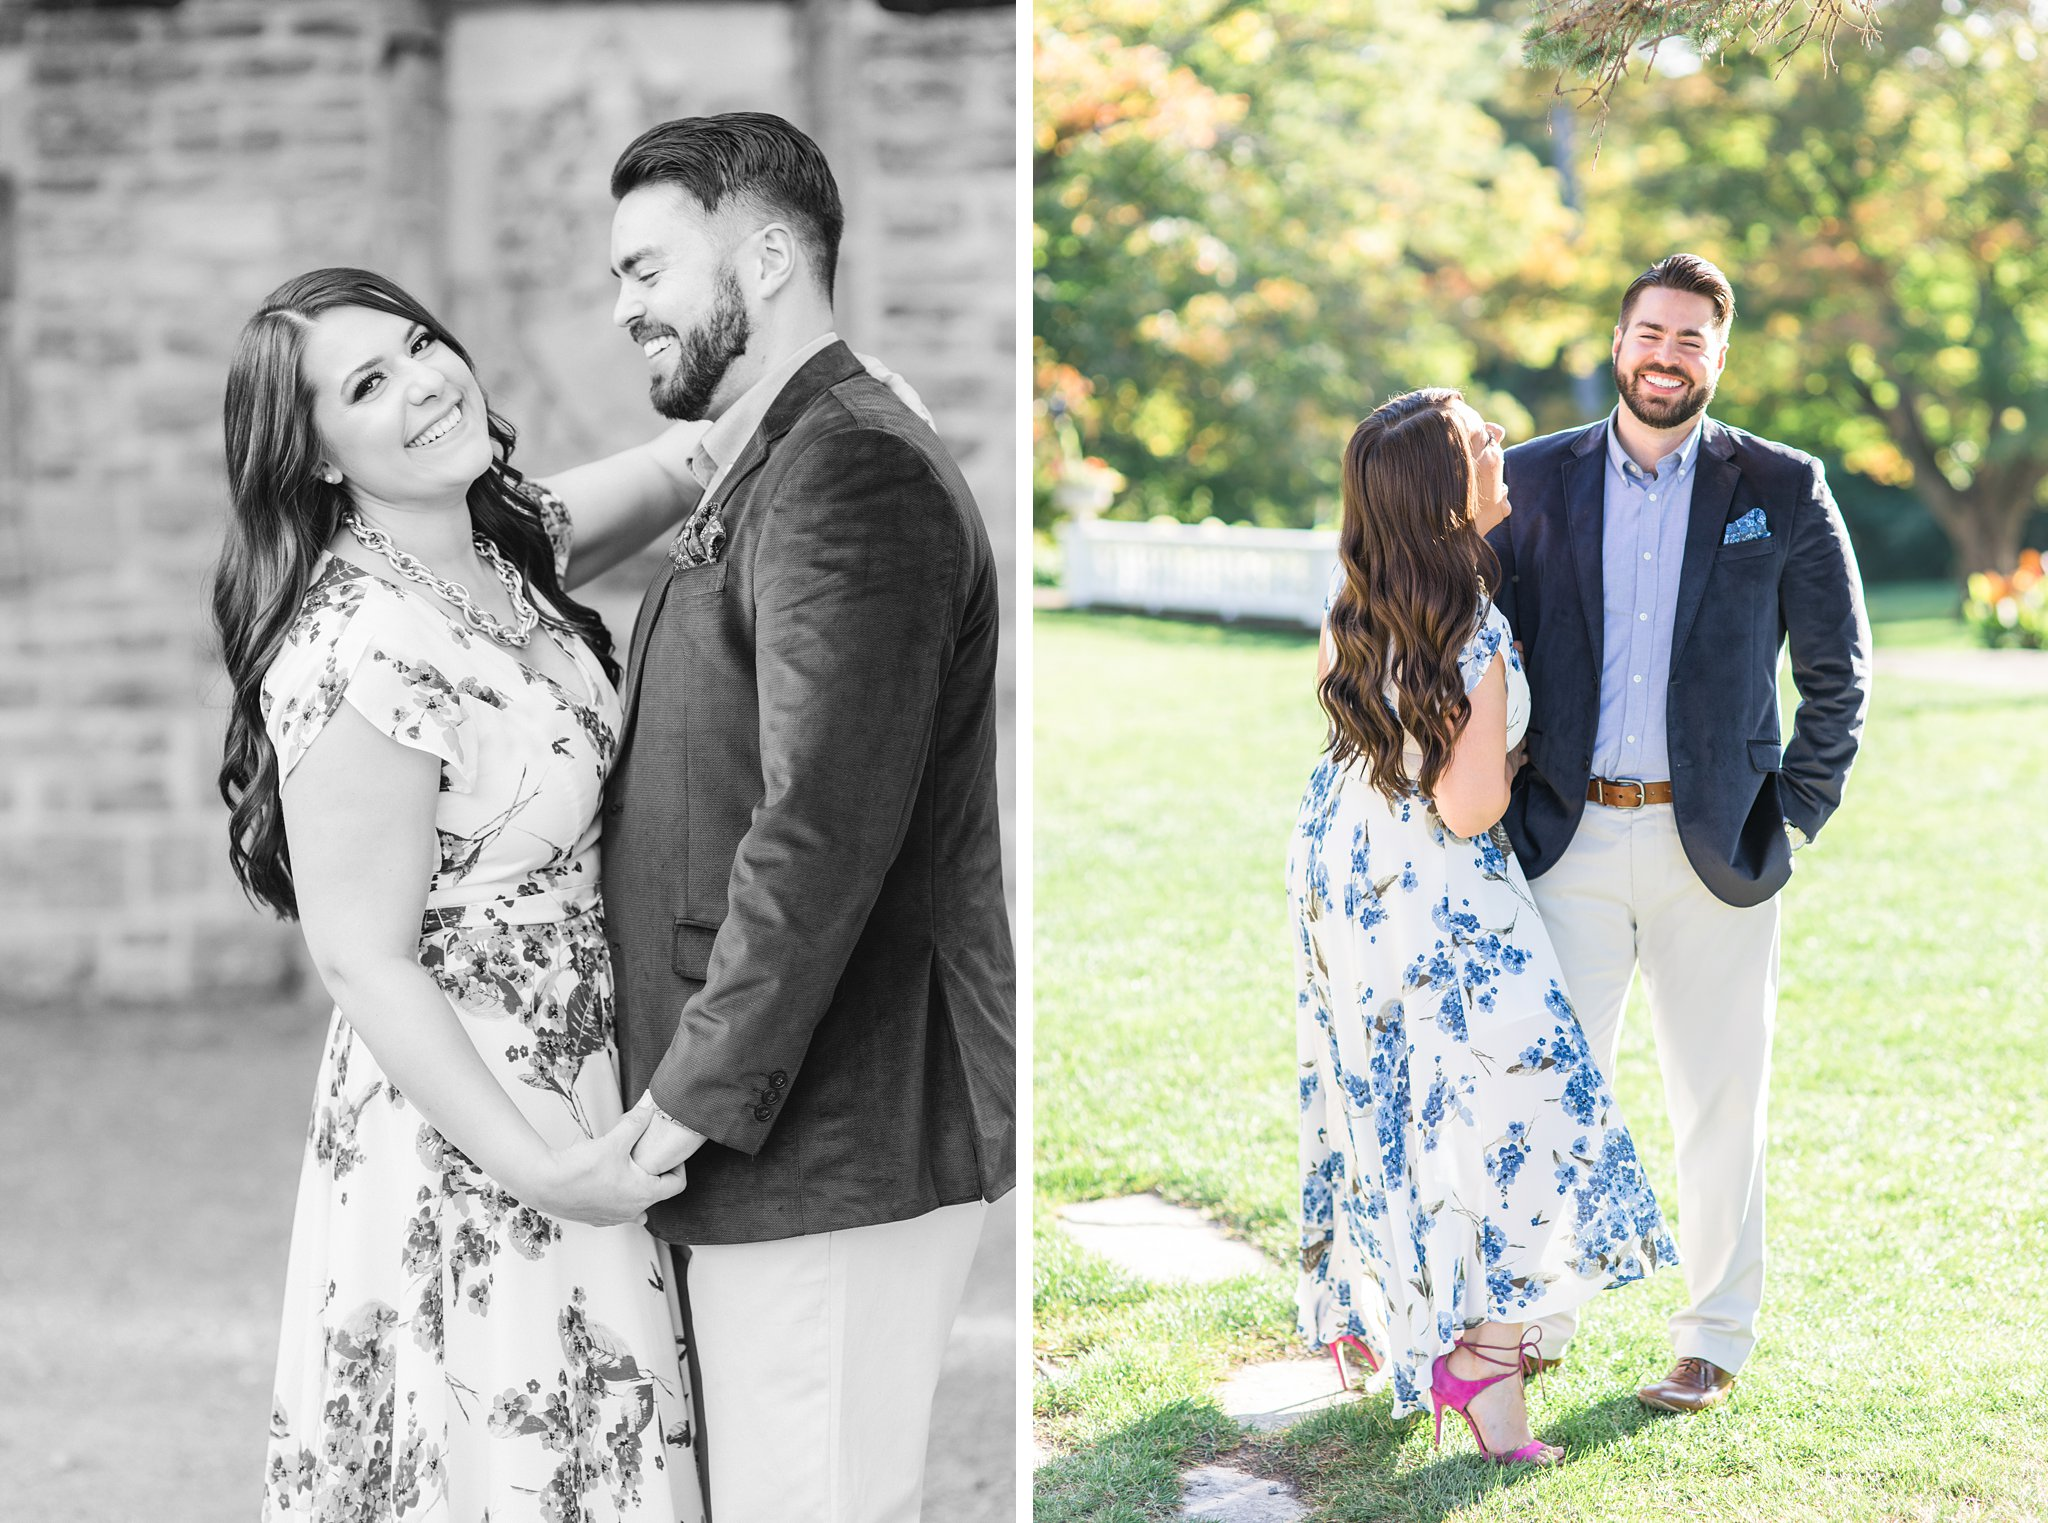 Bride and groom walk by historical ruins, Mackenzie King Estate Engagement Photos by Amy Pinder Photography